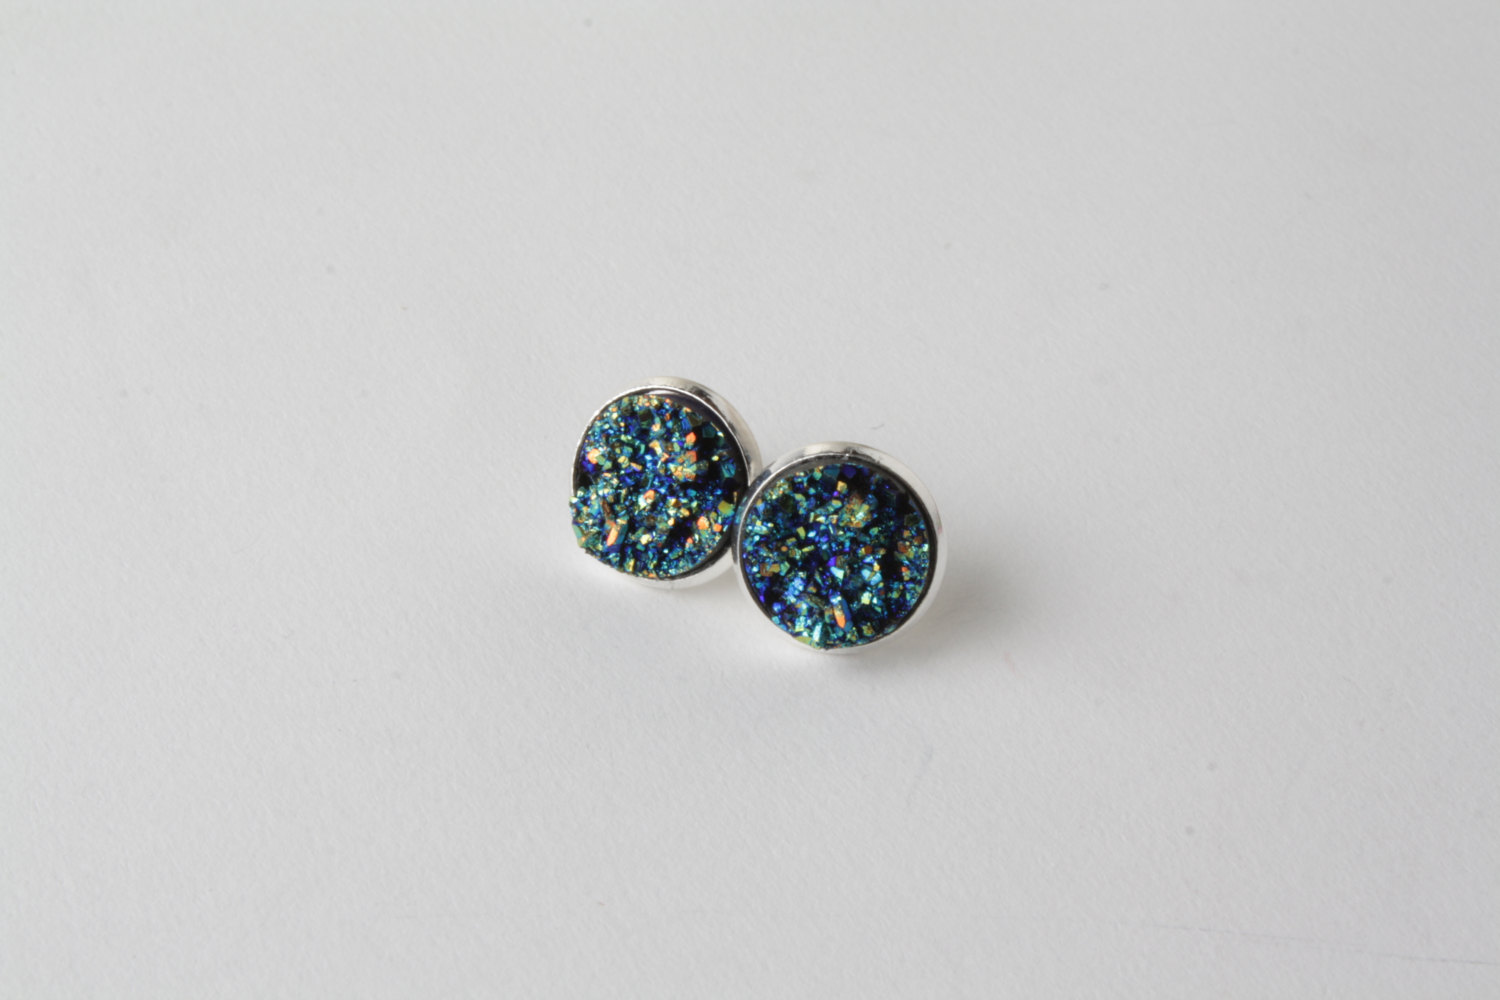 various esteem stud ear earrings improve jewellery clothing simple self accessories handmade studs and products classic to sparkly pretty round colours vitals range different things